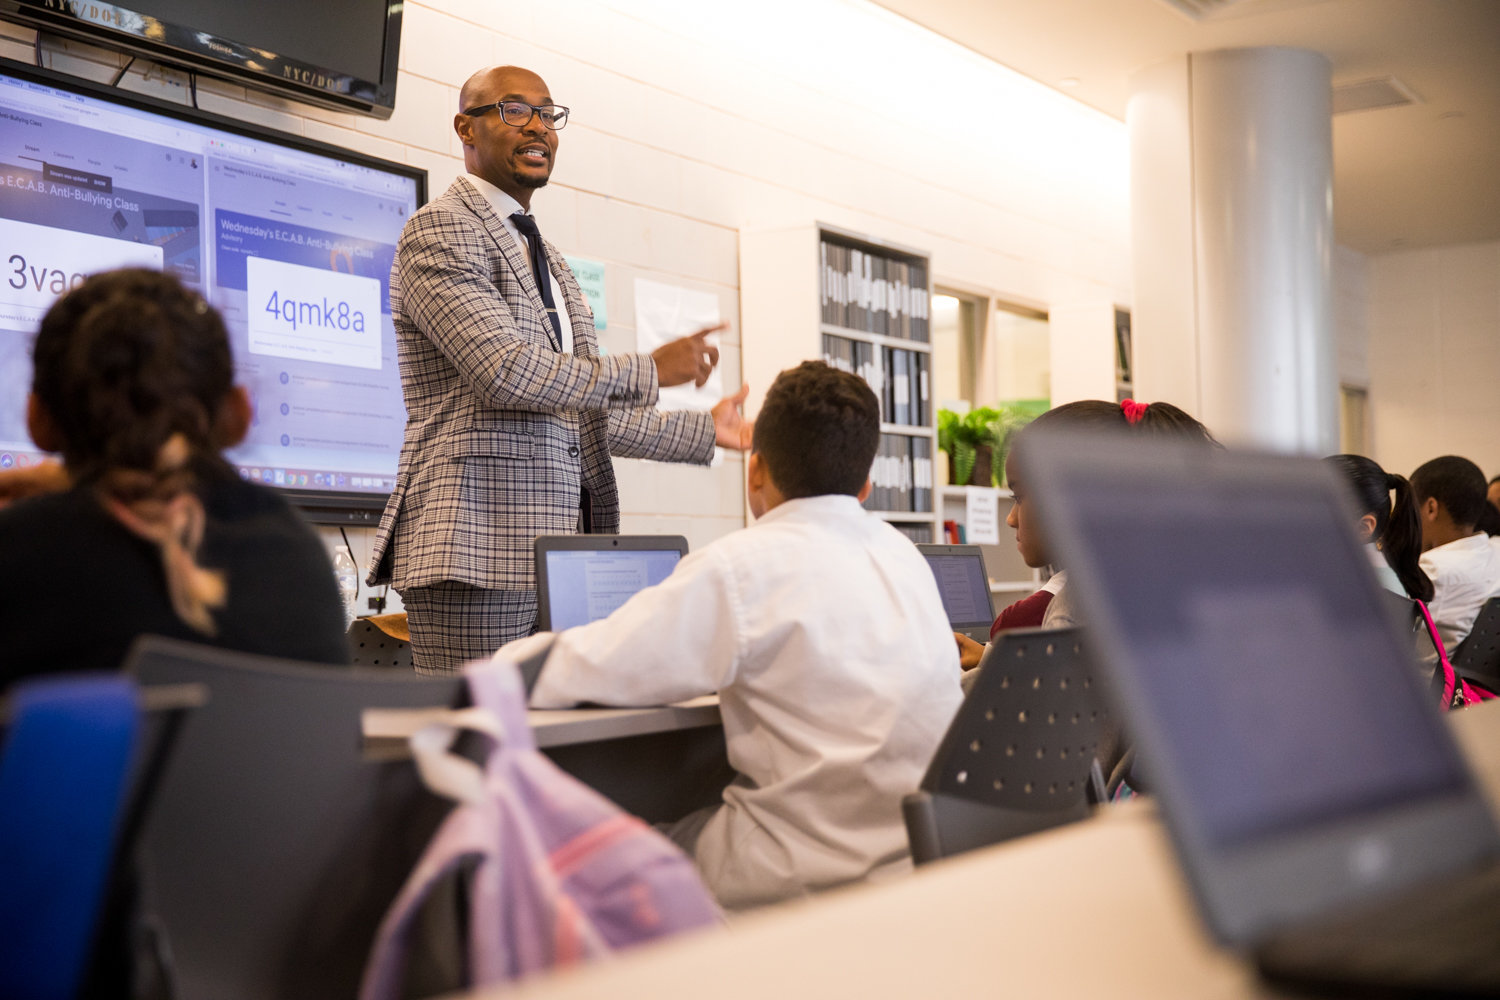 Antoine Larosiliere, a sixth-grade teacher at IN-Tech Academy, guides students through surveys during Empowering Communities Against Bullying, an after-school anti-bullying workshop he inaugurated last year.